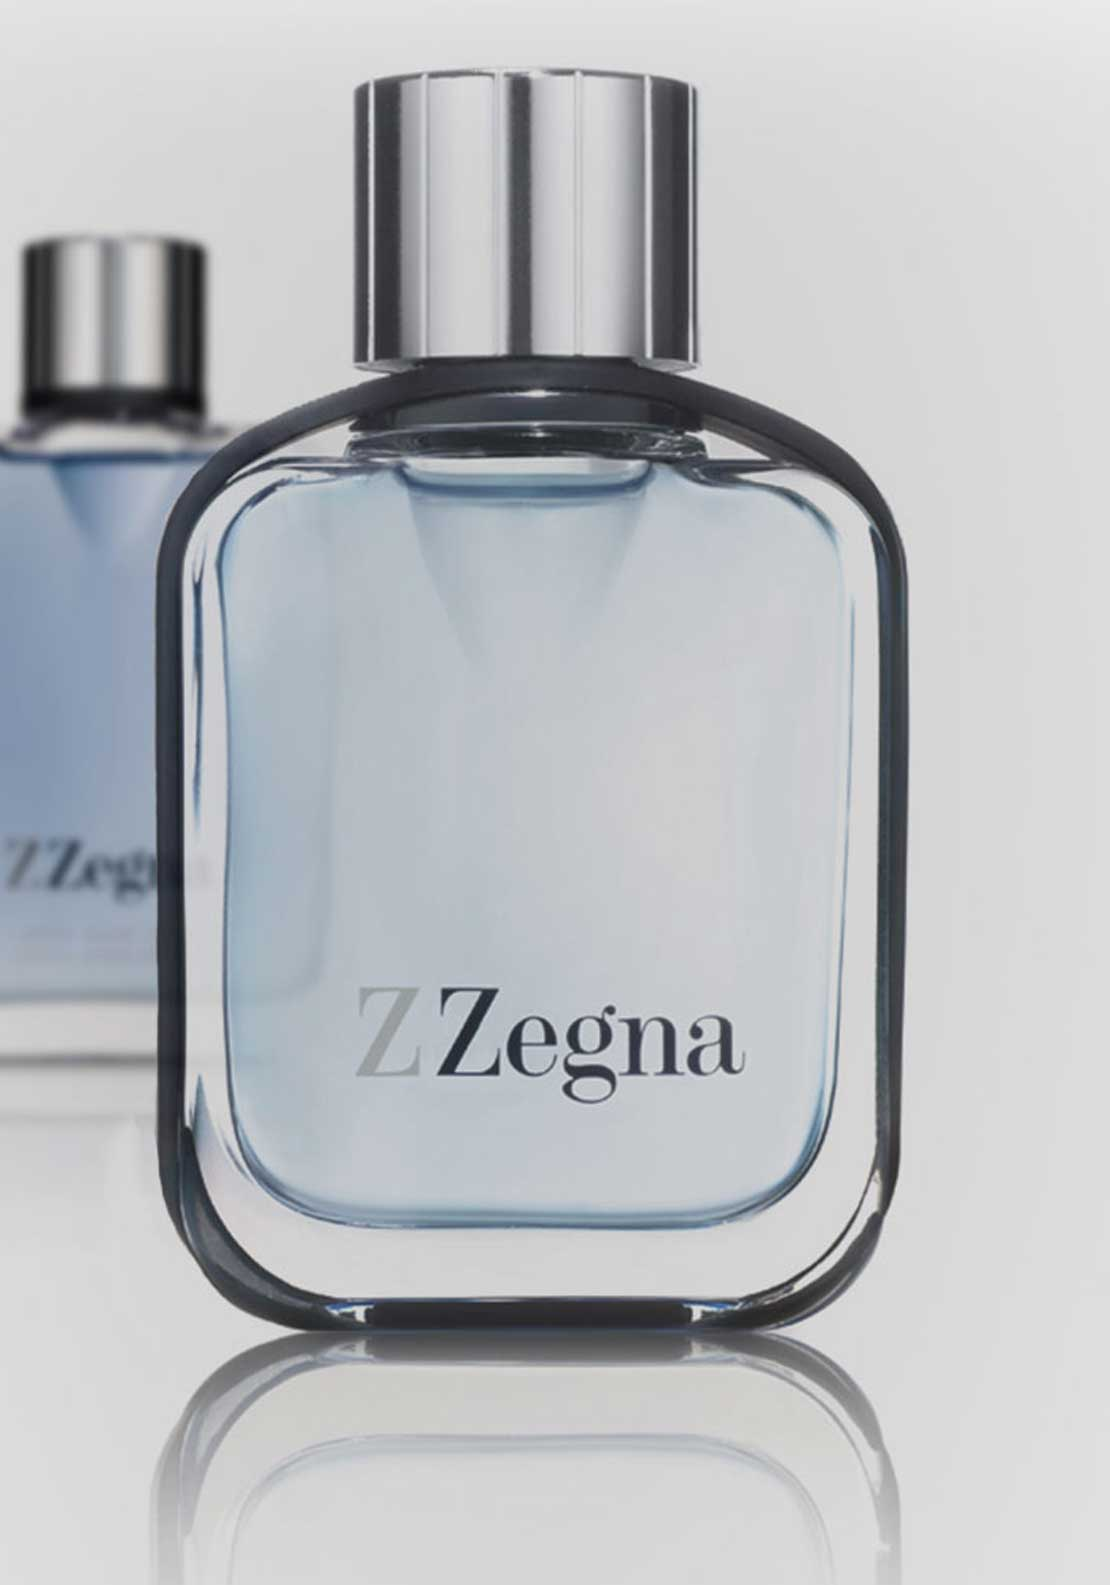 Ermenegildo Zegna ZZegna Eau De Toilette Natural Spray, 50ml